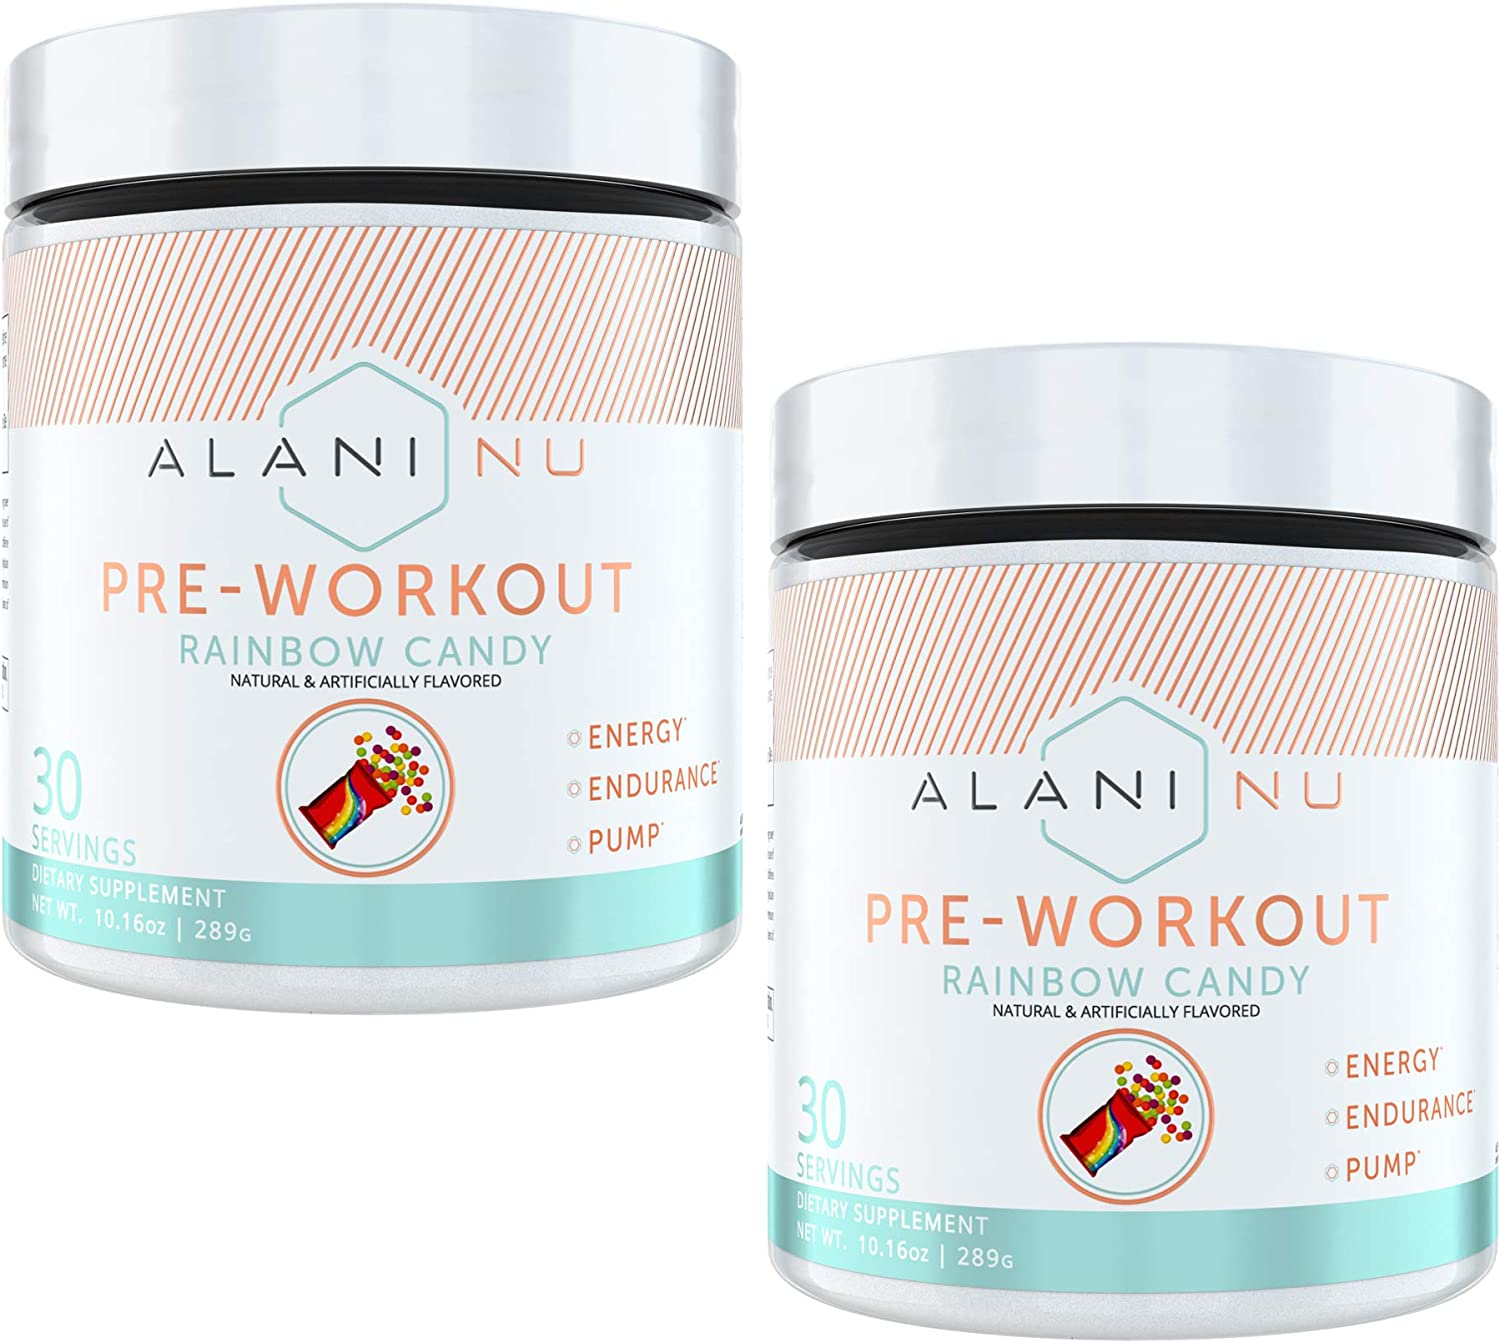 Alani Nu Pre-Workout – Rainbow Candy 2 Pack